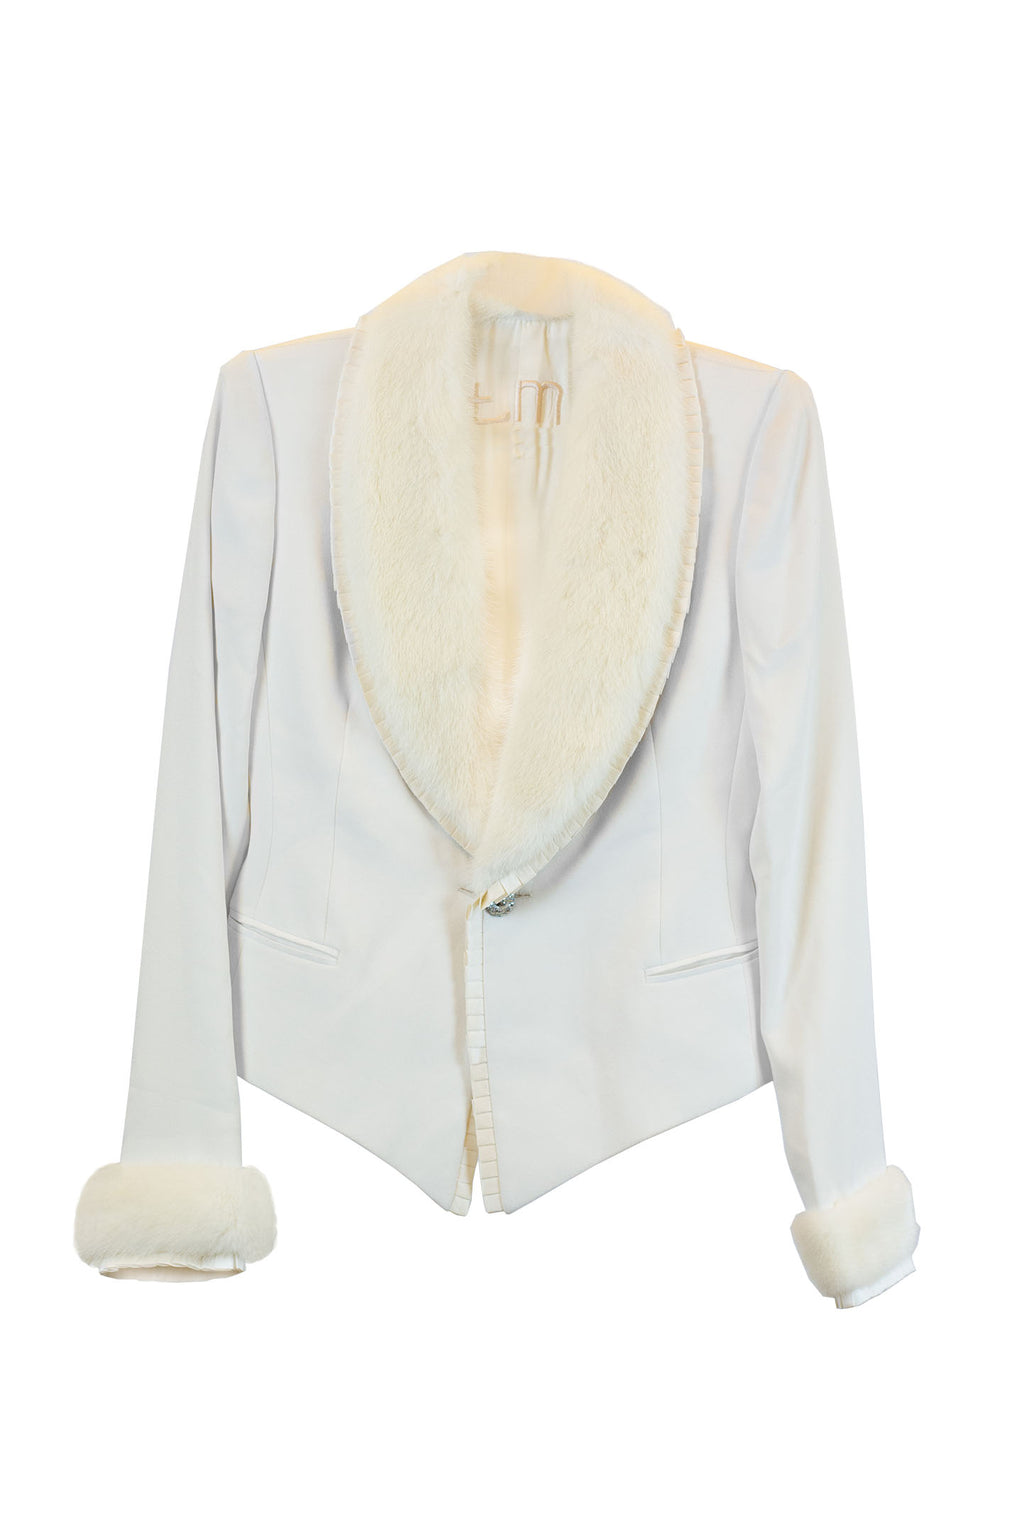 Toni Miranda - Raw jacket made of silk crepe with pleates in satin and white mink Size Small